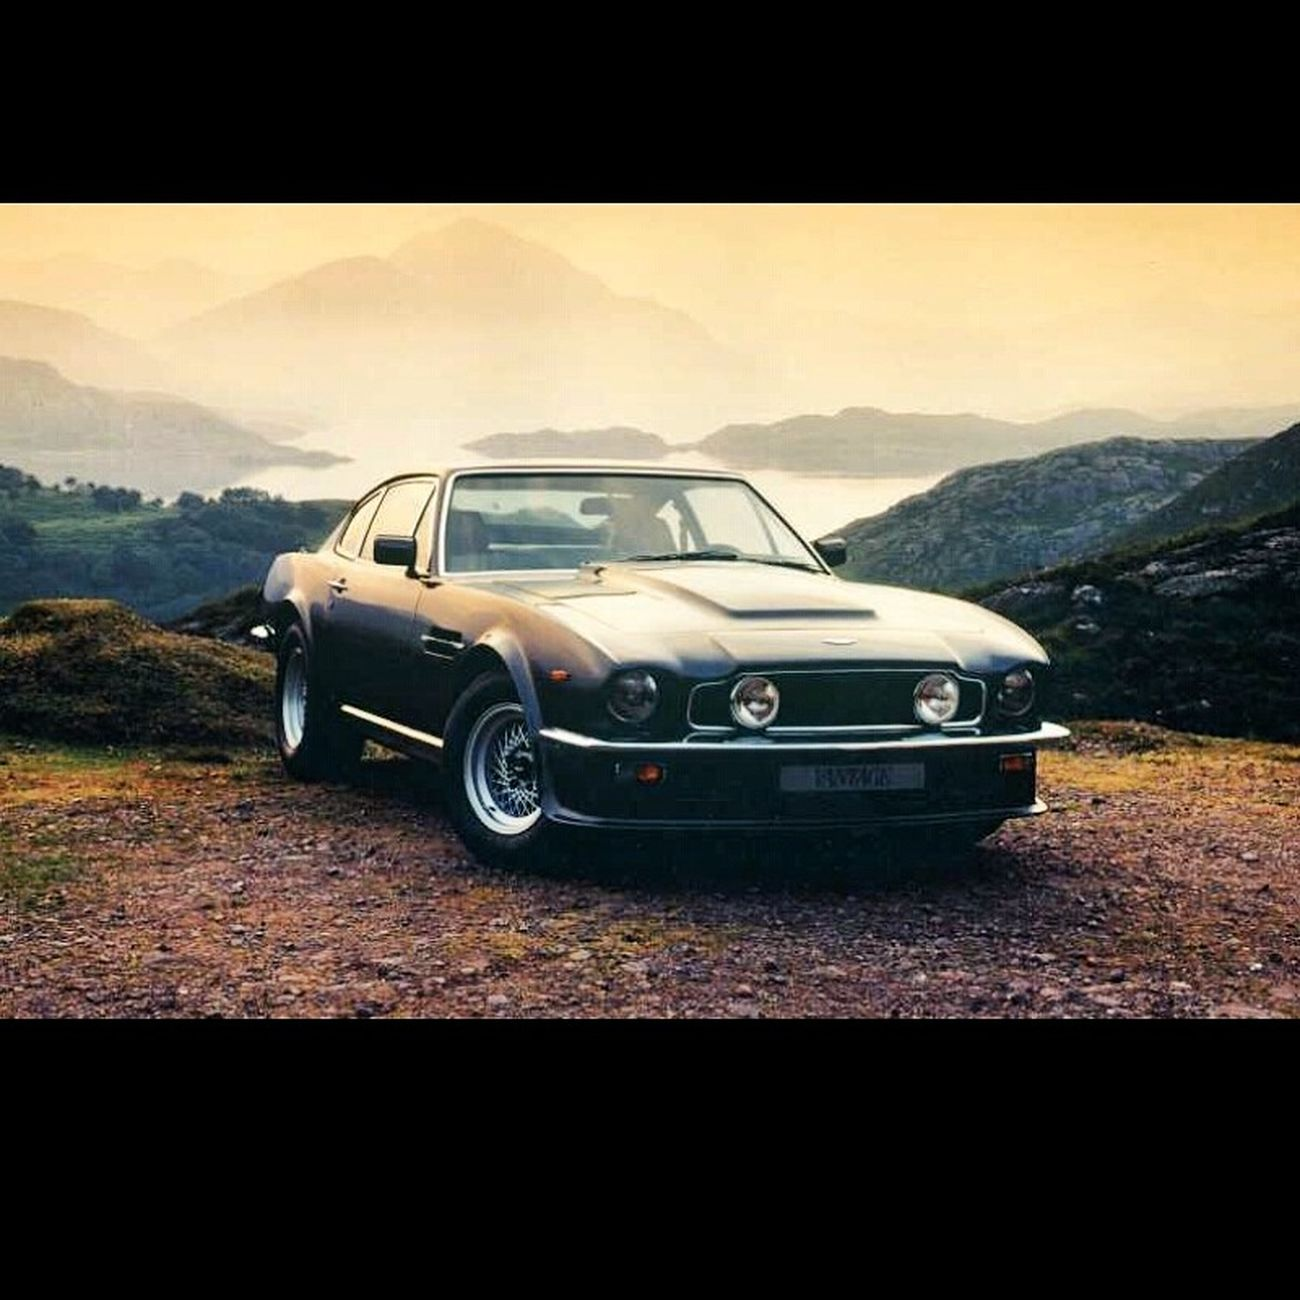 Austin Martin V8 Vantage England Classy Hi! .........good evening in morning ♡♡♡♡♡♡♡^-*